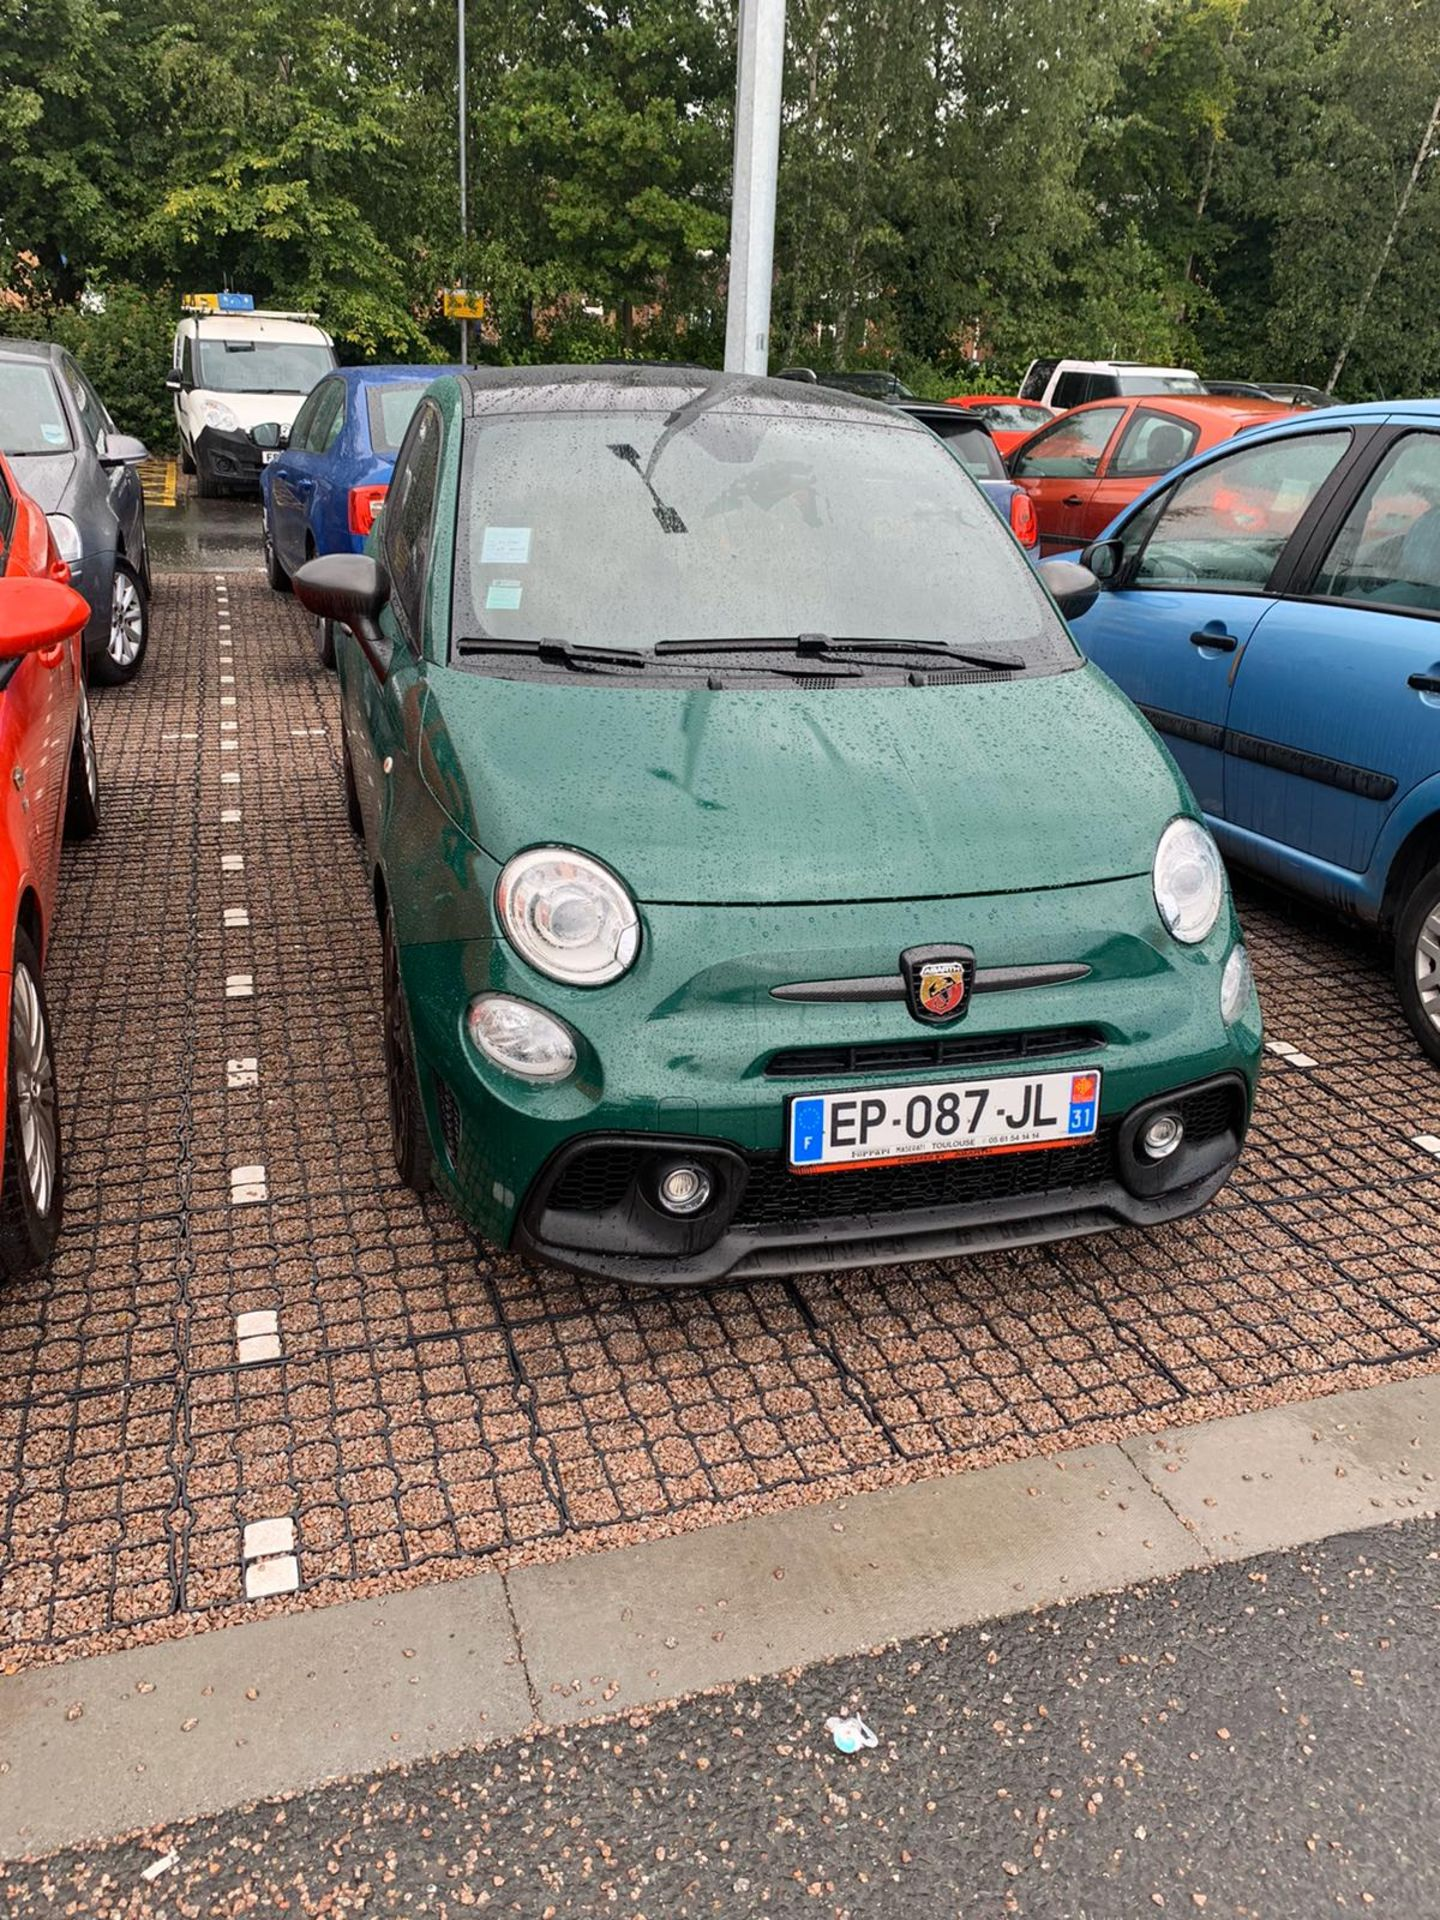 ABARTH 595 COMP 2016, 10,000 MILES NO ACCIDENTS, CUSTOM EXHAUST, WRAPPED DARK GREEN, FRENCH PLATES - Image 4 of 5